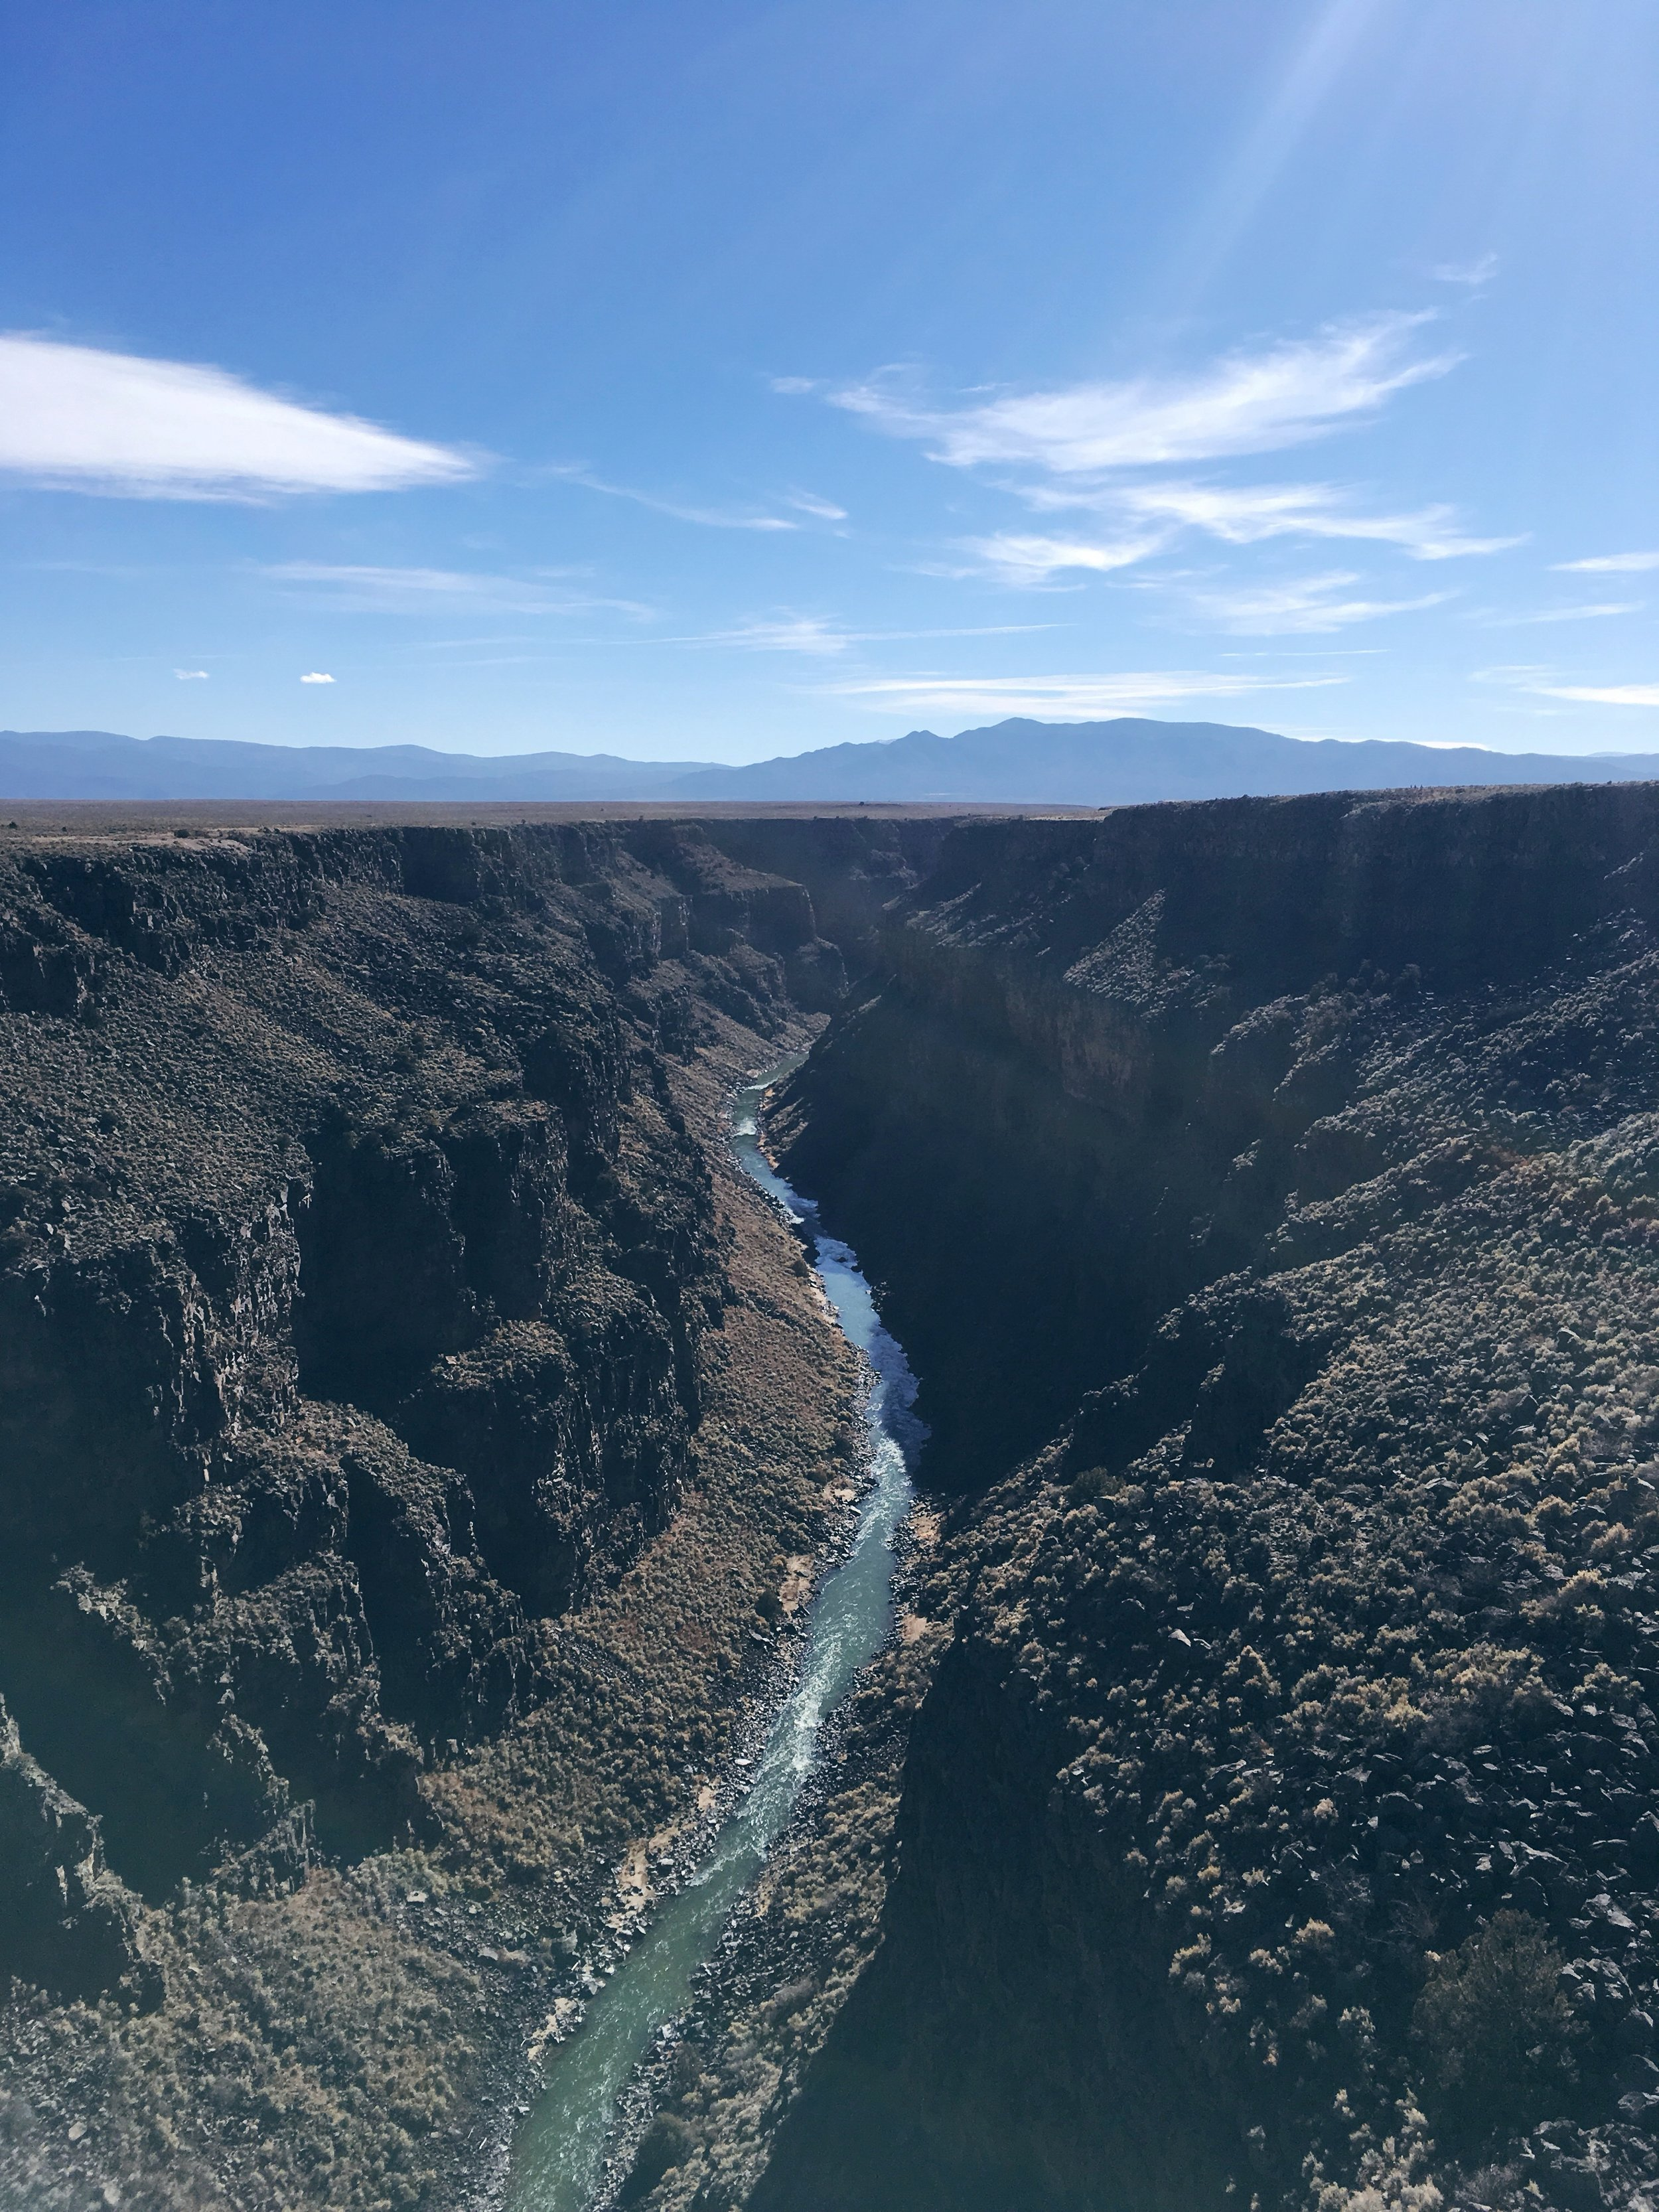 The view of the Rio Grande River from the Gorge Bridge near Taos is equal parts magnificent and terrifying.